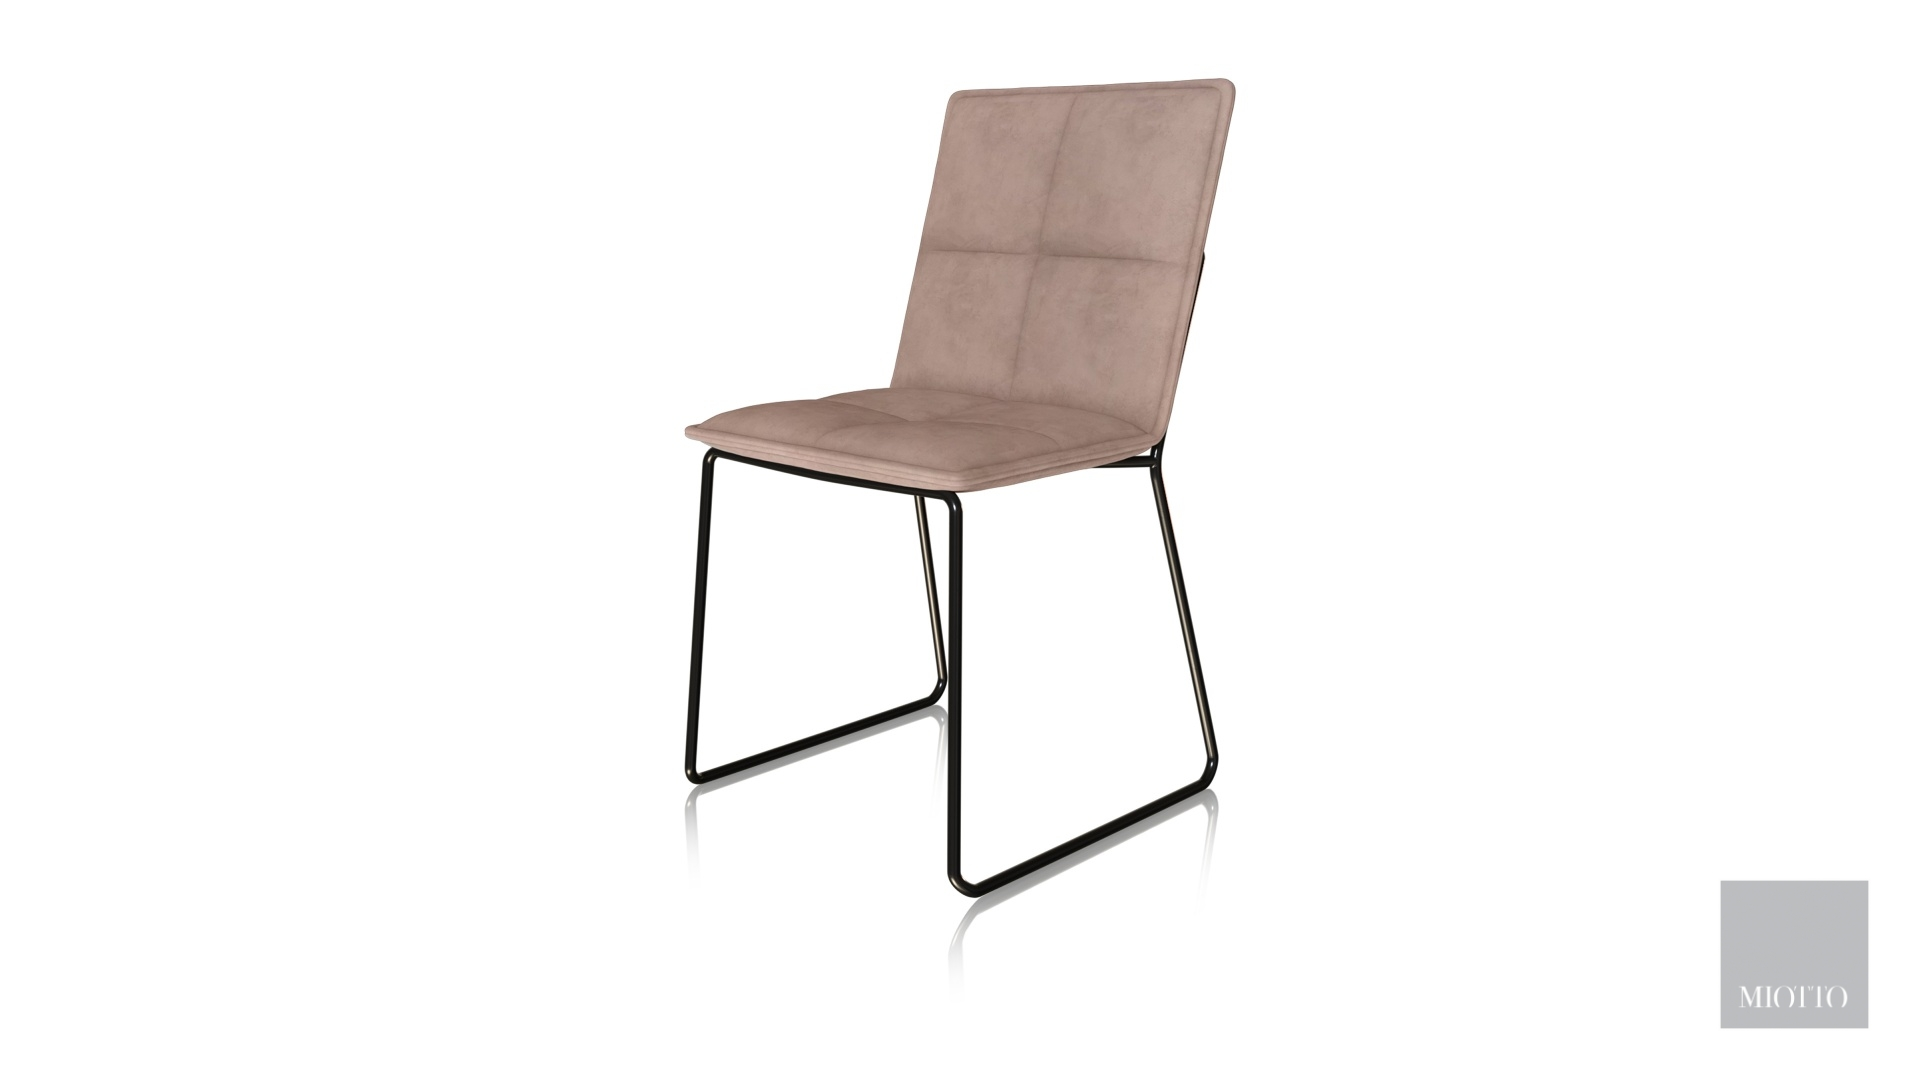 miotto_dateo dining chair brown miotto dining furniture t